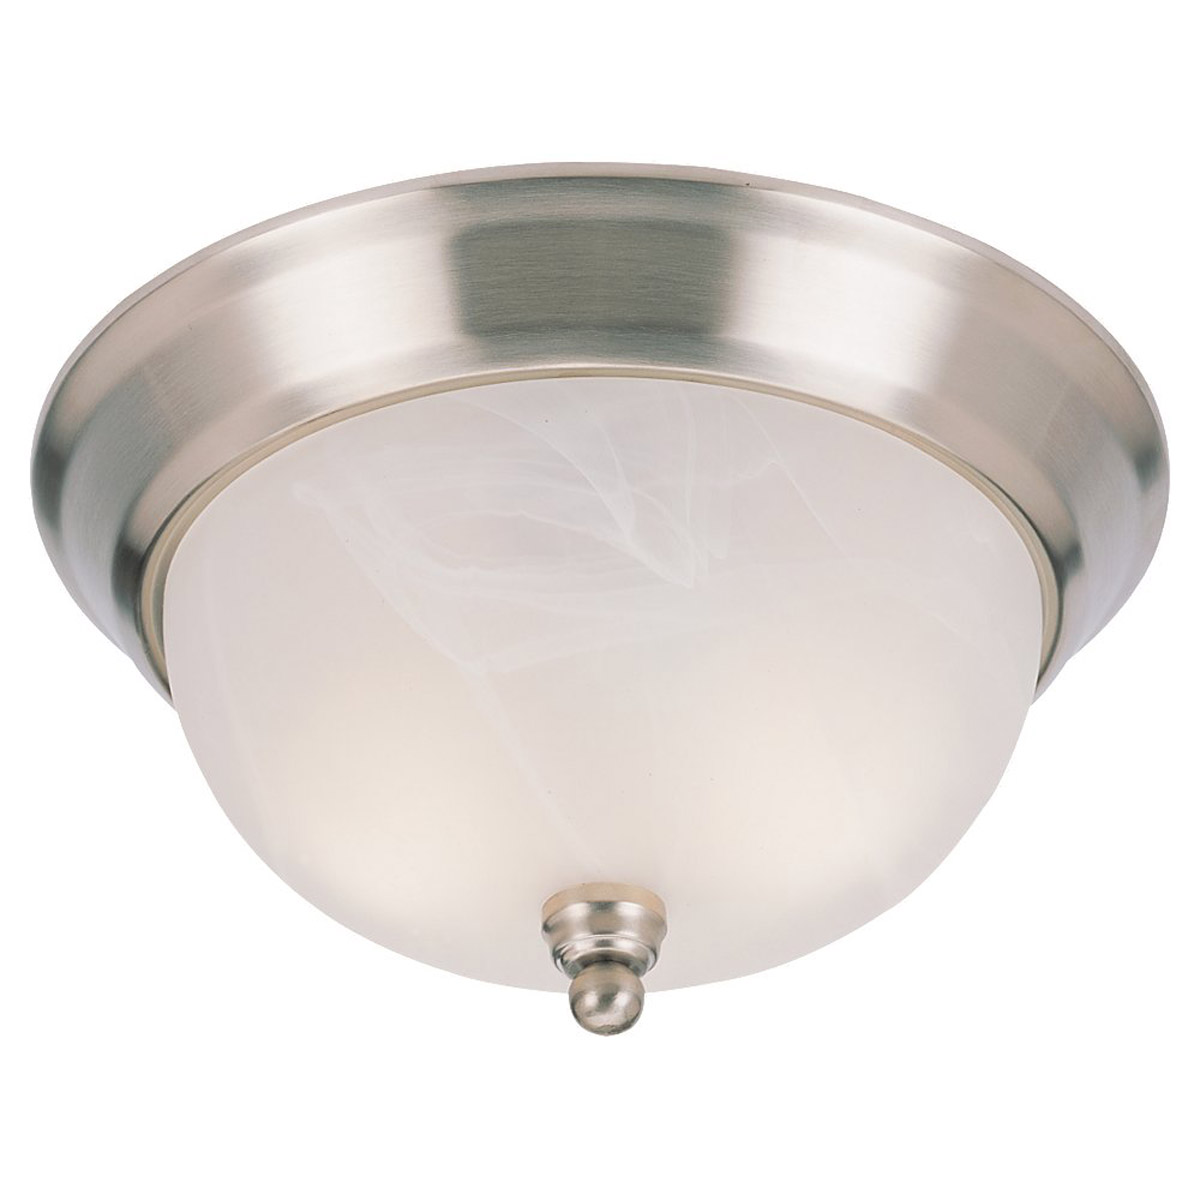 Sea Gull Lighting Landon 3 Light Fluorescent Flush Mount in Brushed Nickel 79242BLE-962